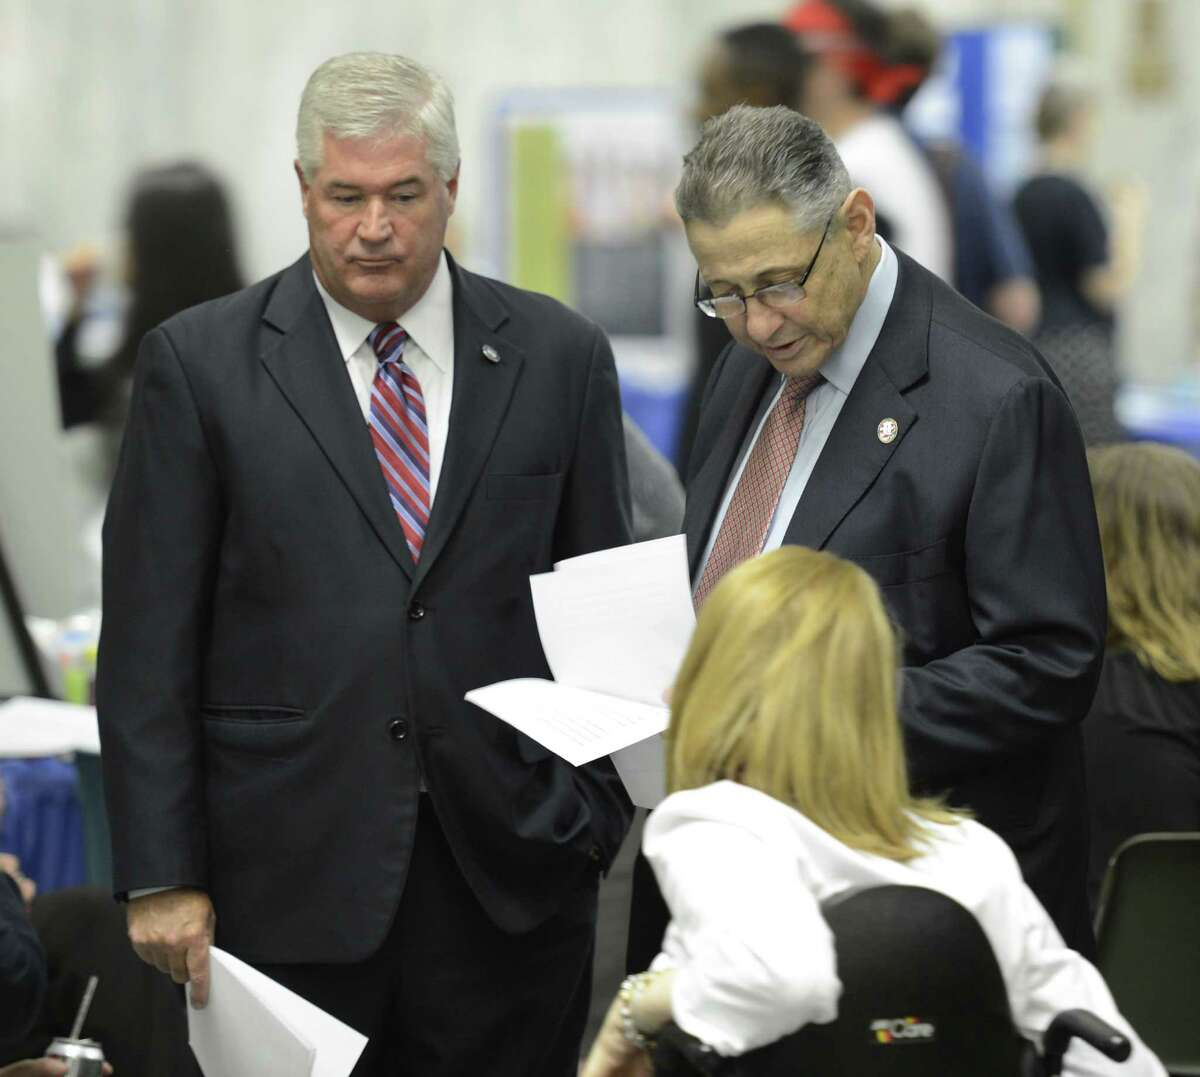 New York State Assembly Minority Leader Brian M. Kolb (R,I,C-Canandaigua), left joins Assembly Speaker Shelly Silver at the New York State Disabilities Awareness Day gathering in Albany, N.Y. May 21, 2012. (Skip Dickstein / Times Union)